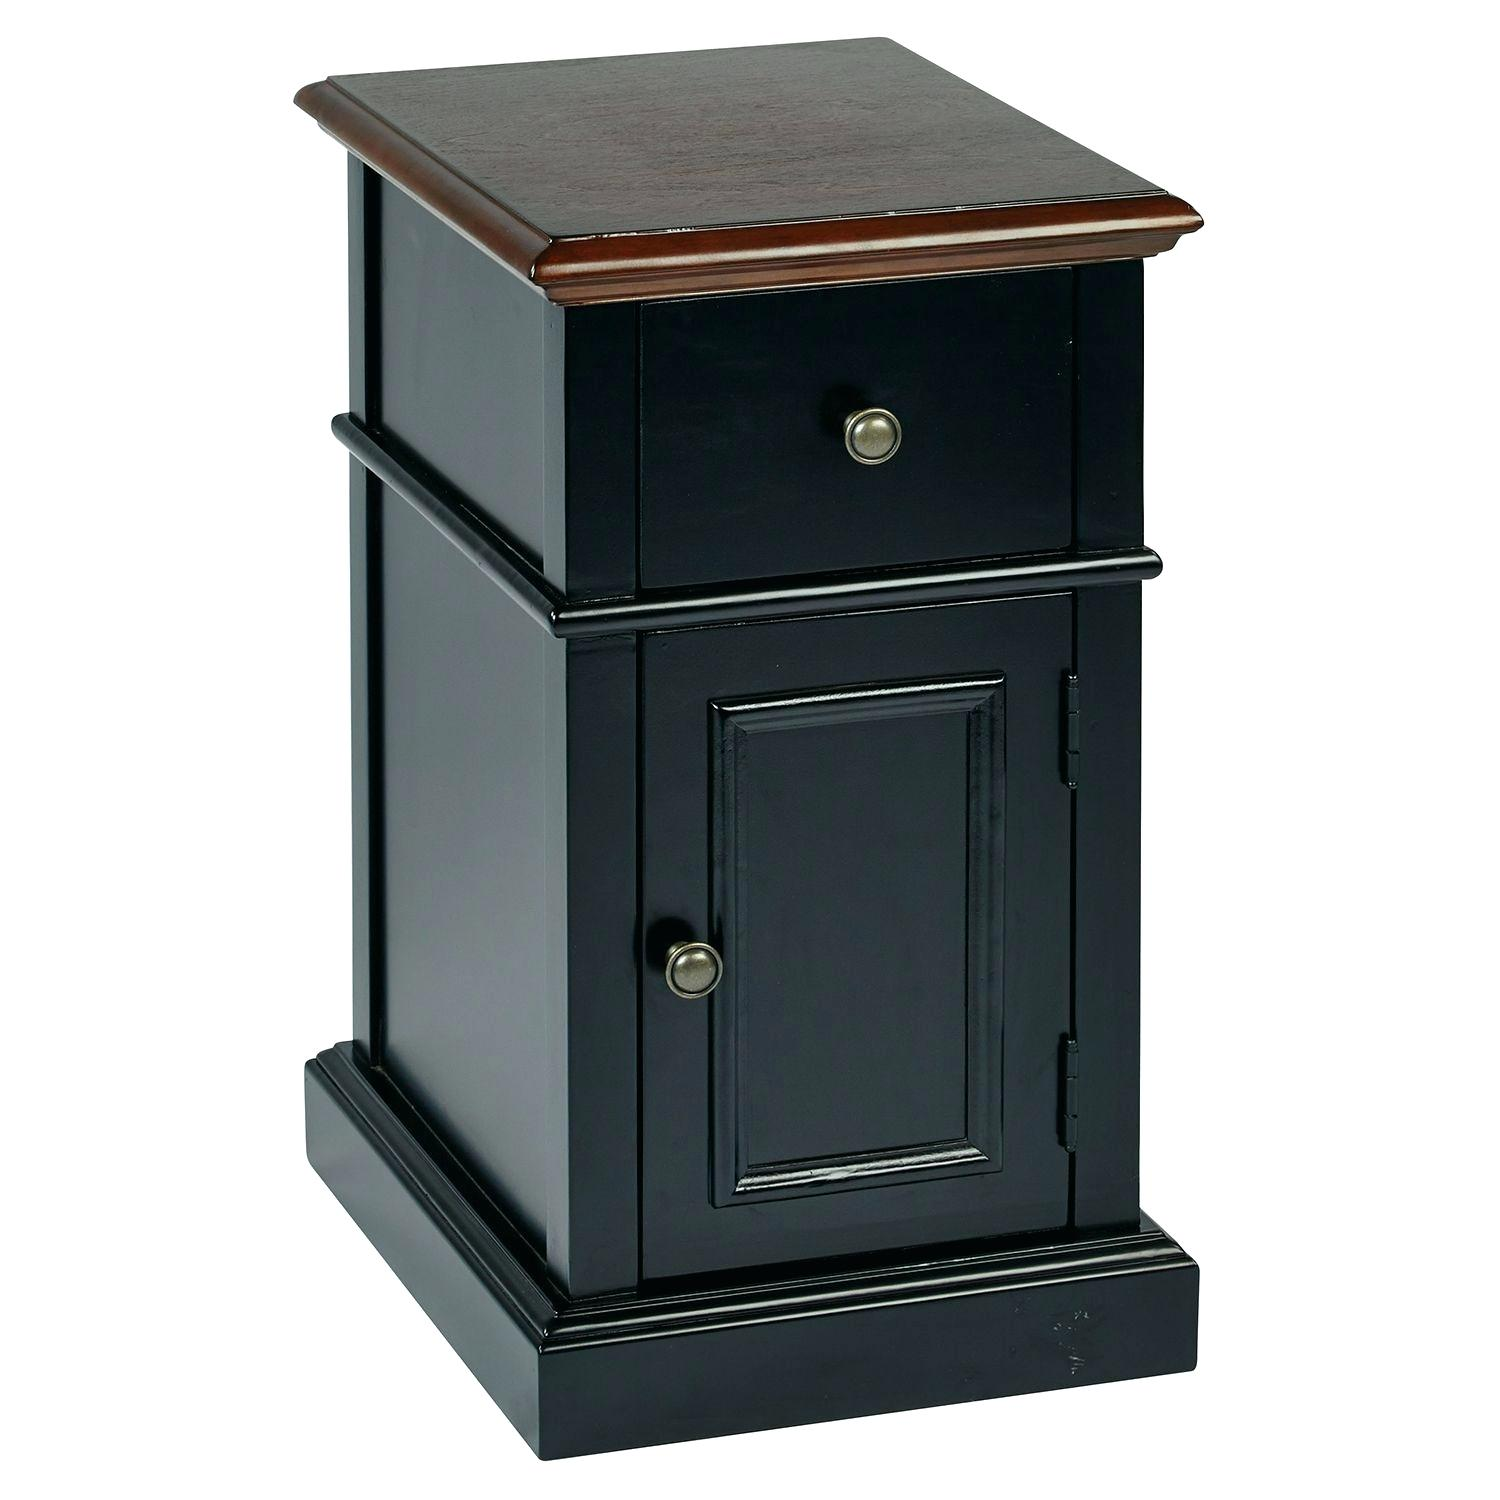 accent table black target looknook save this item tables friday winsome industrial farmhouse coffee ethan allen country french small bedroom end outdoor wicker side with umbrella